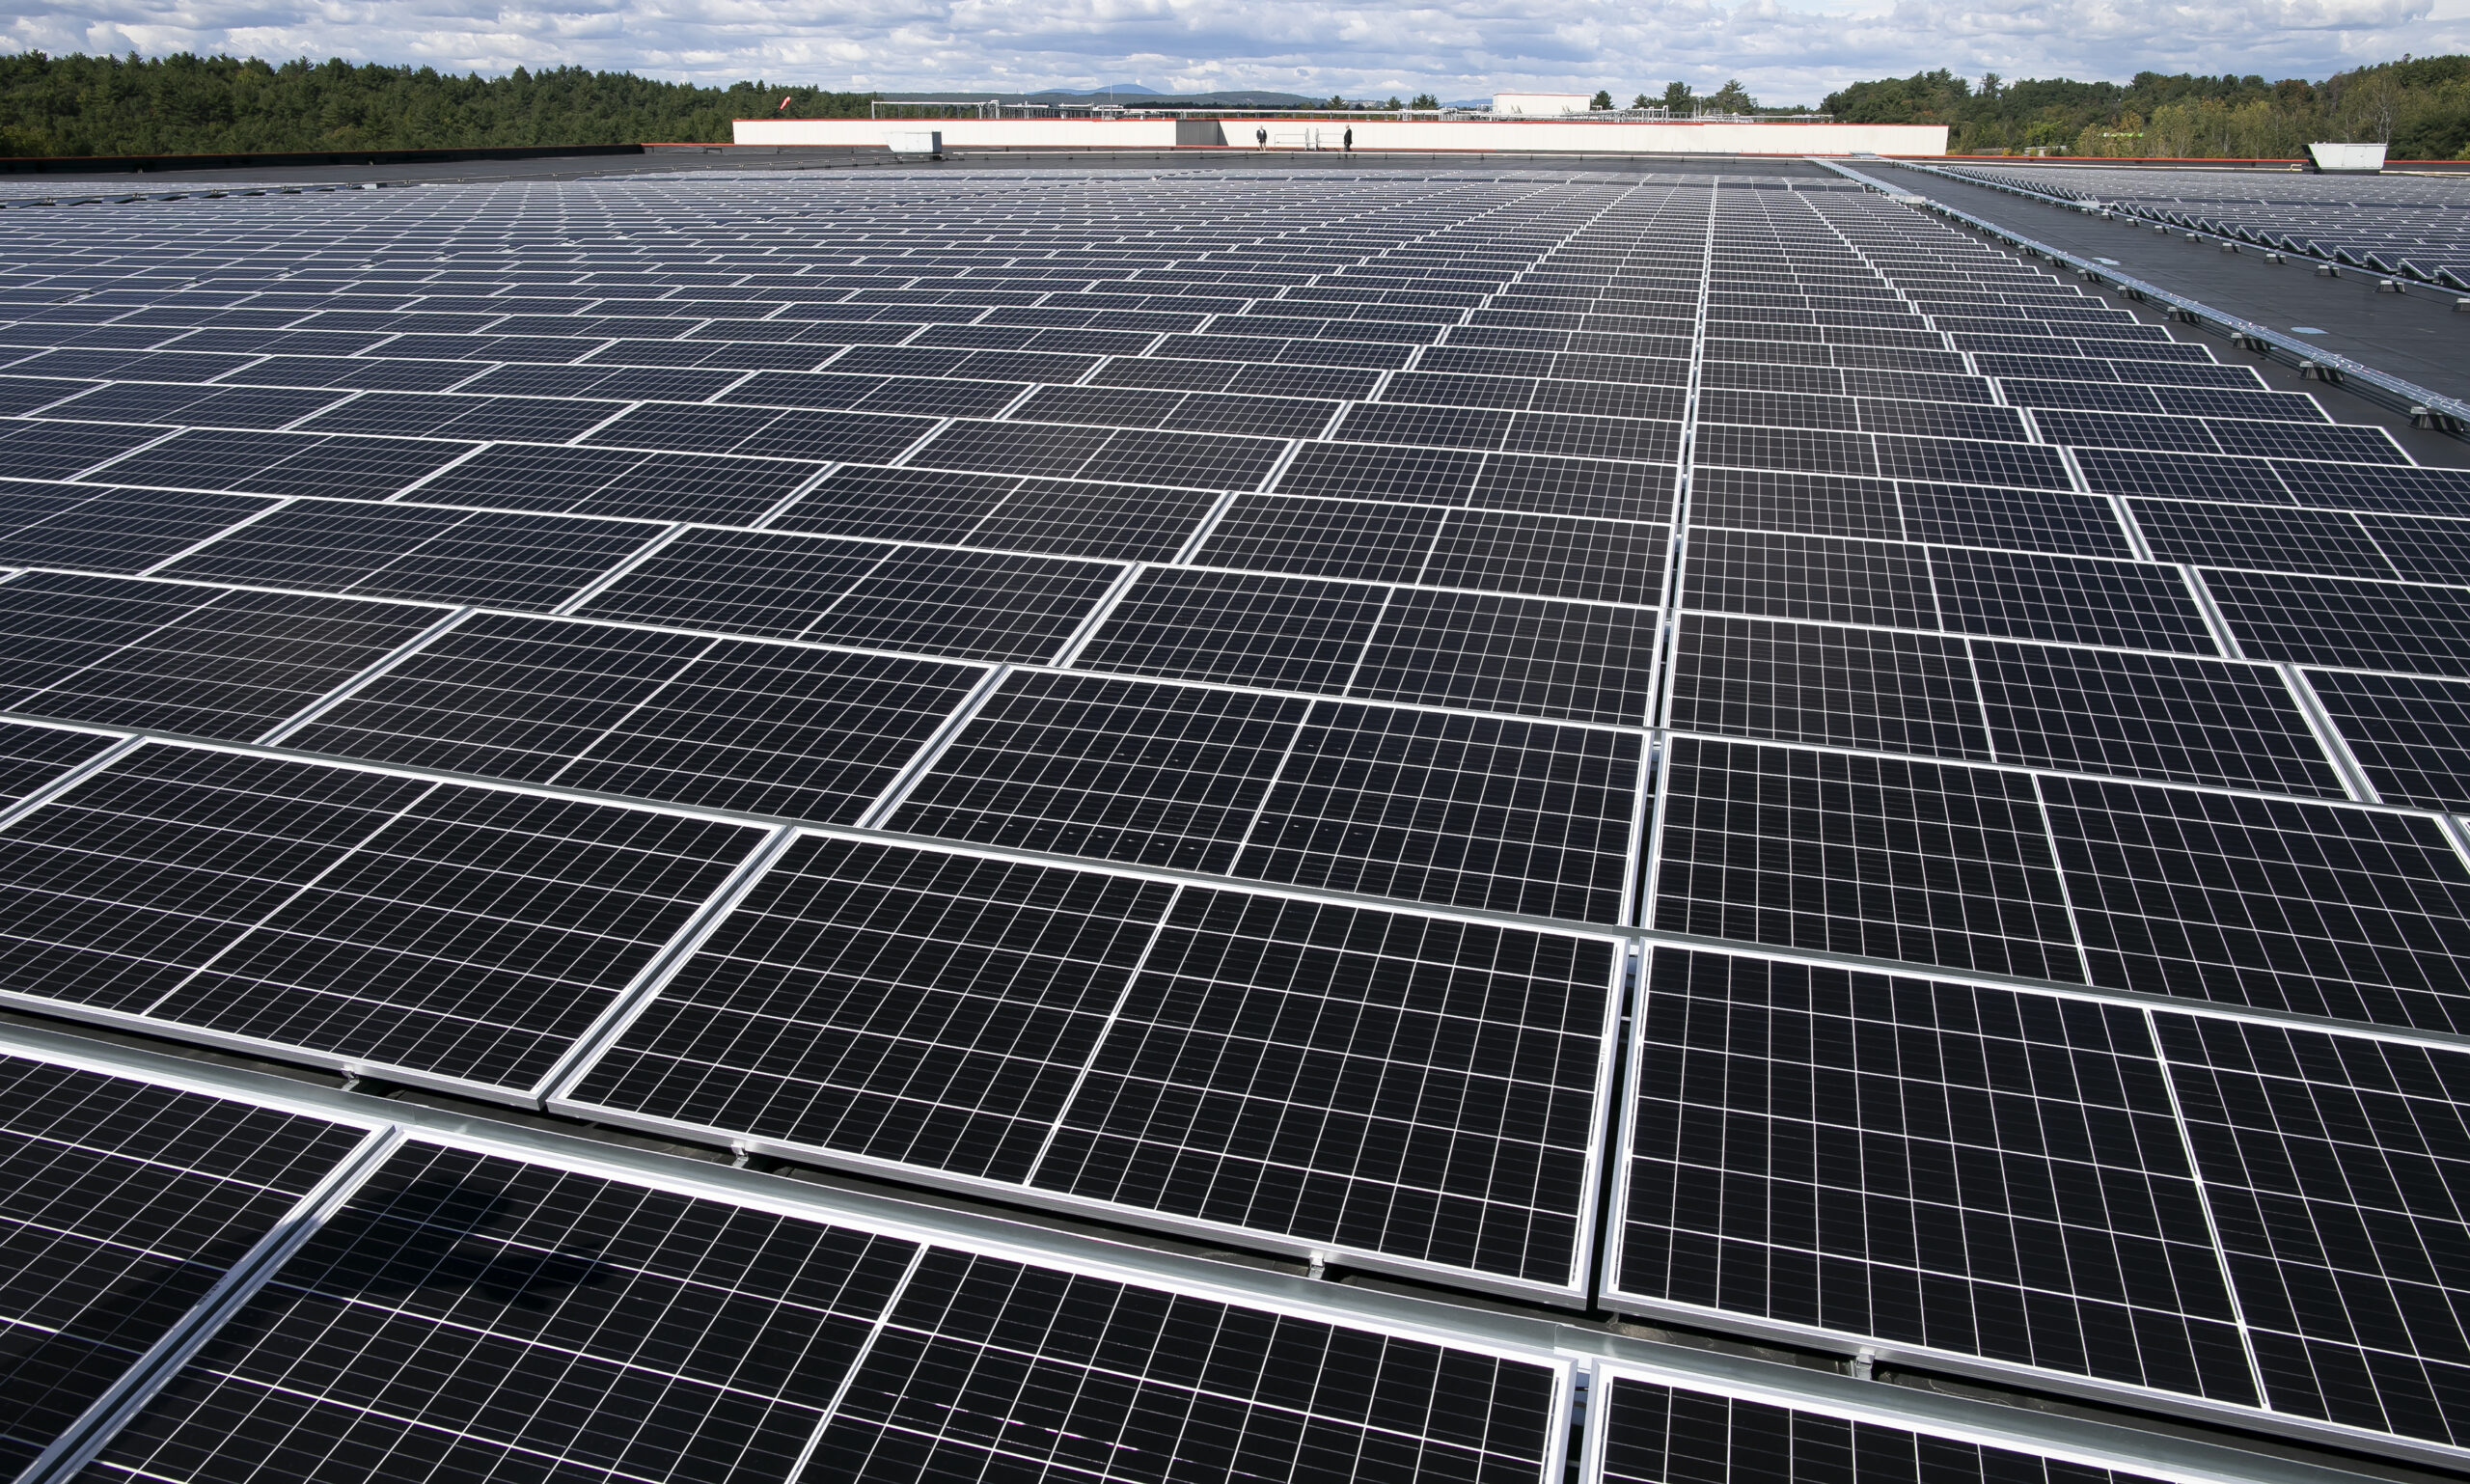 It's our biggest rooftop solar array! That's not saying much in N.H.